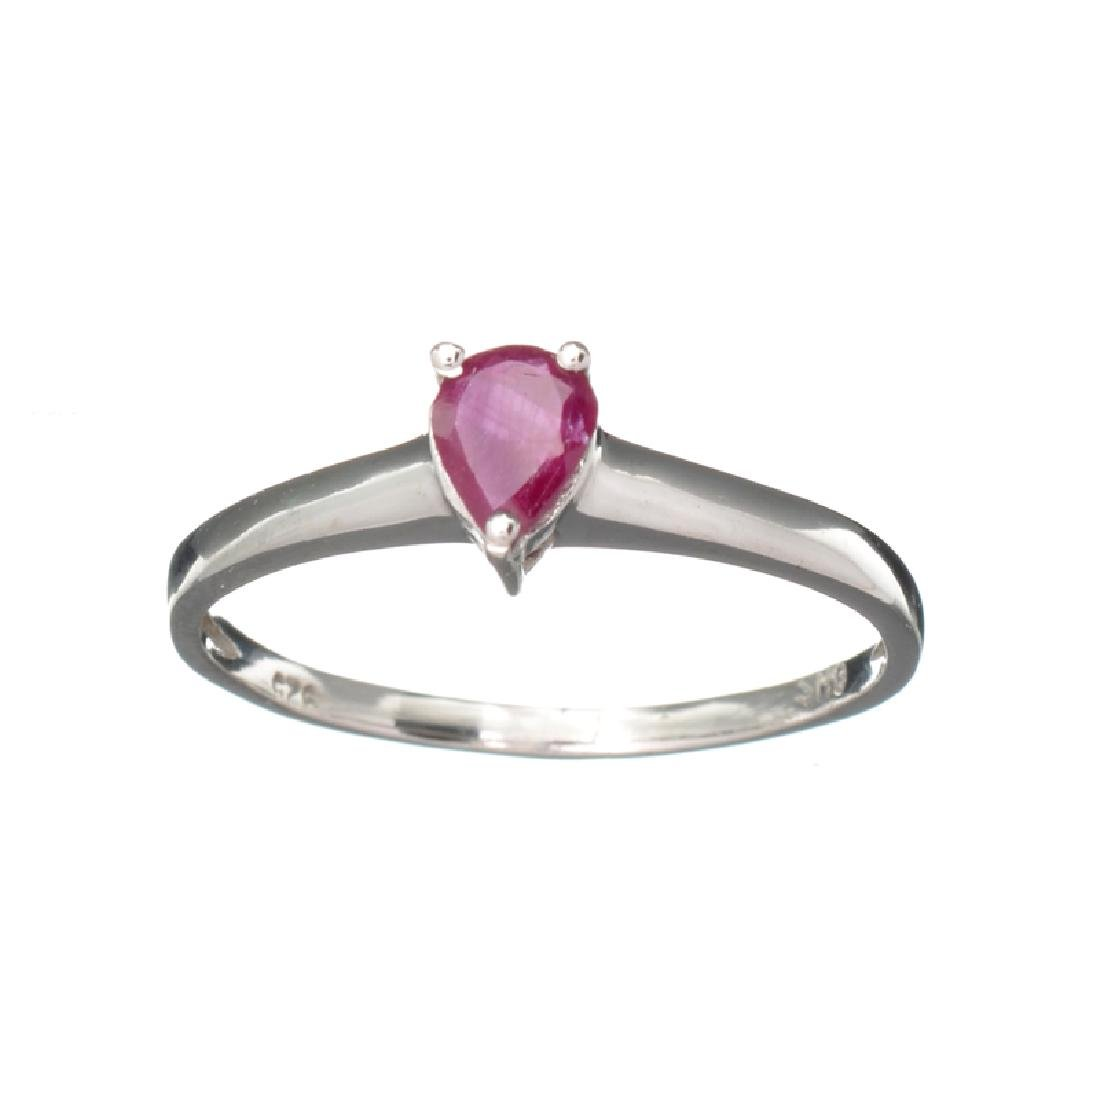 APP: 0.5k Fine Jewelry 0.25CT Pear Cut Ruby And